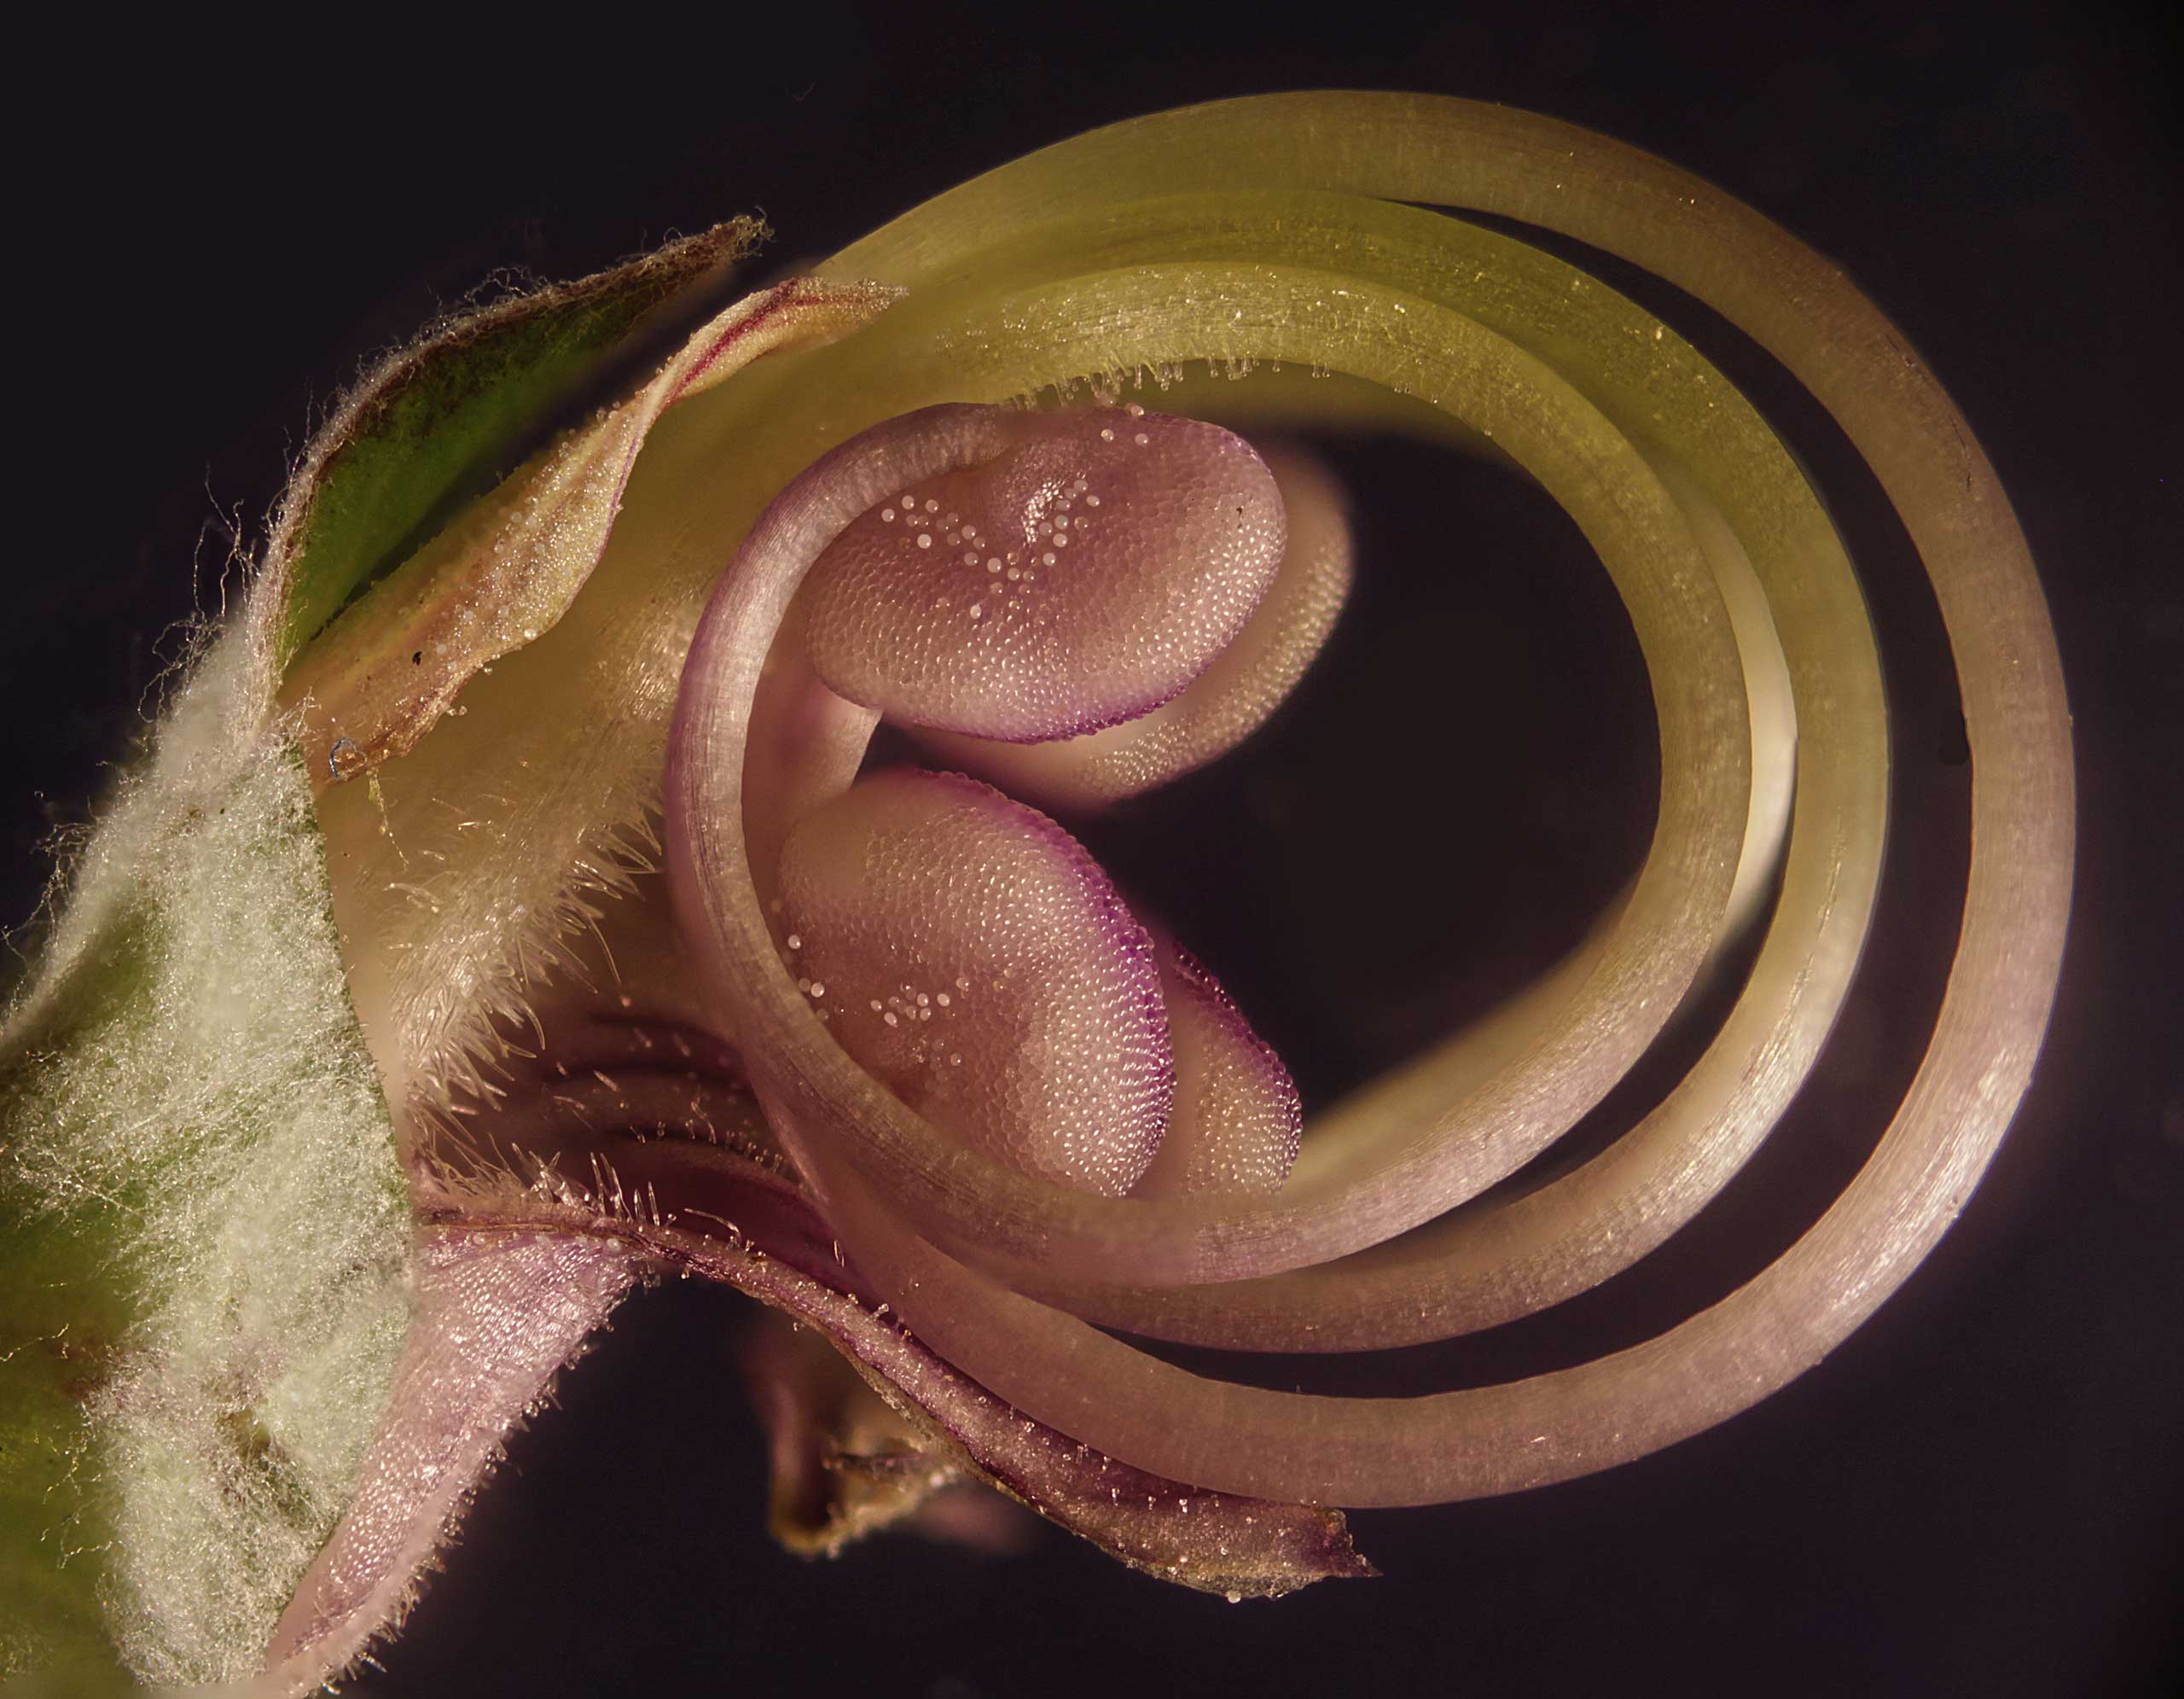 A flower embryo at 40x magnification.